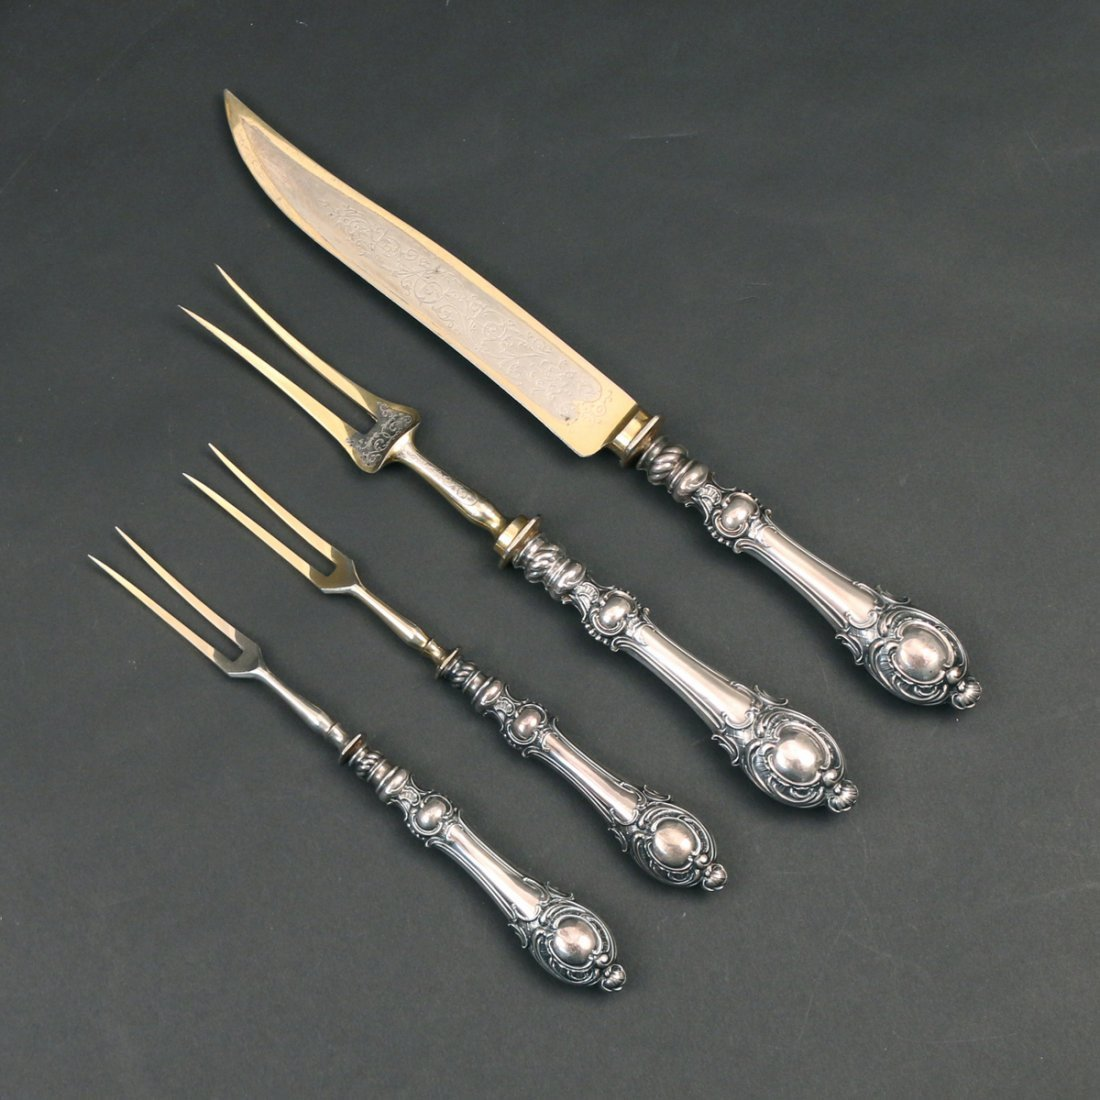 (2pc) BOXED '800' SILVER CARVING SET - 2